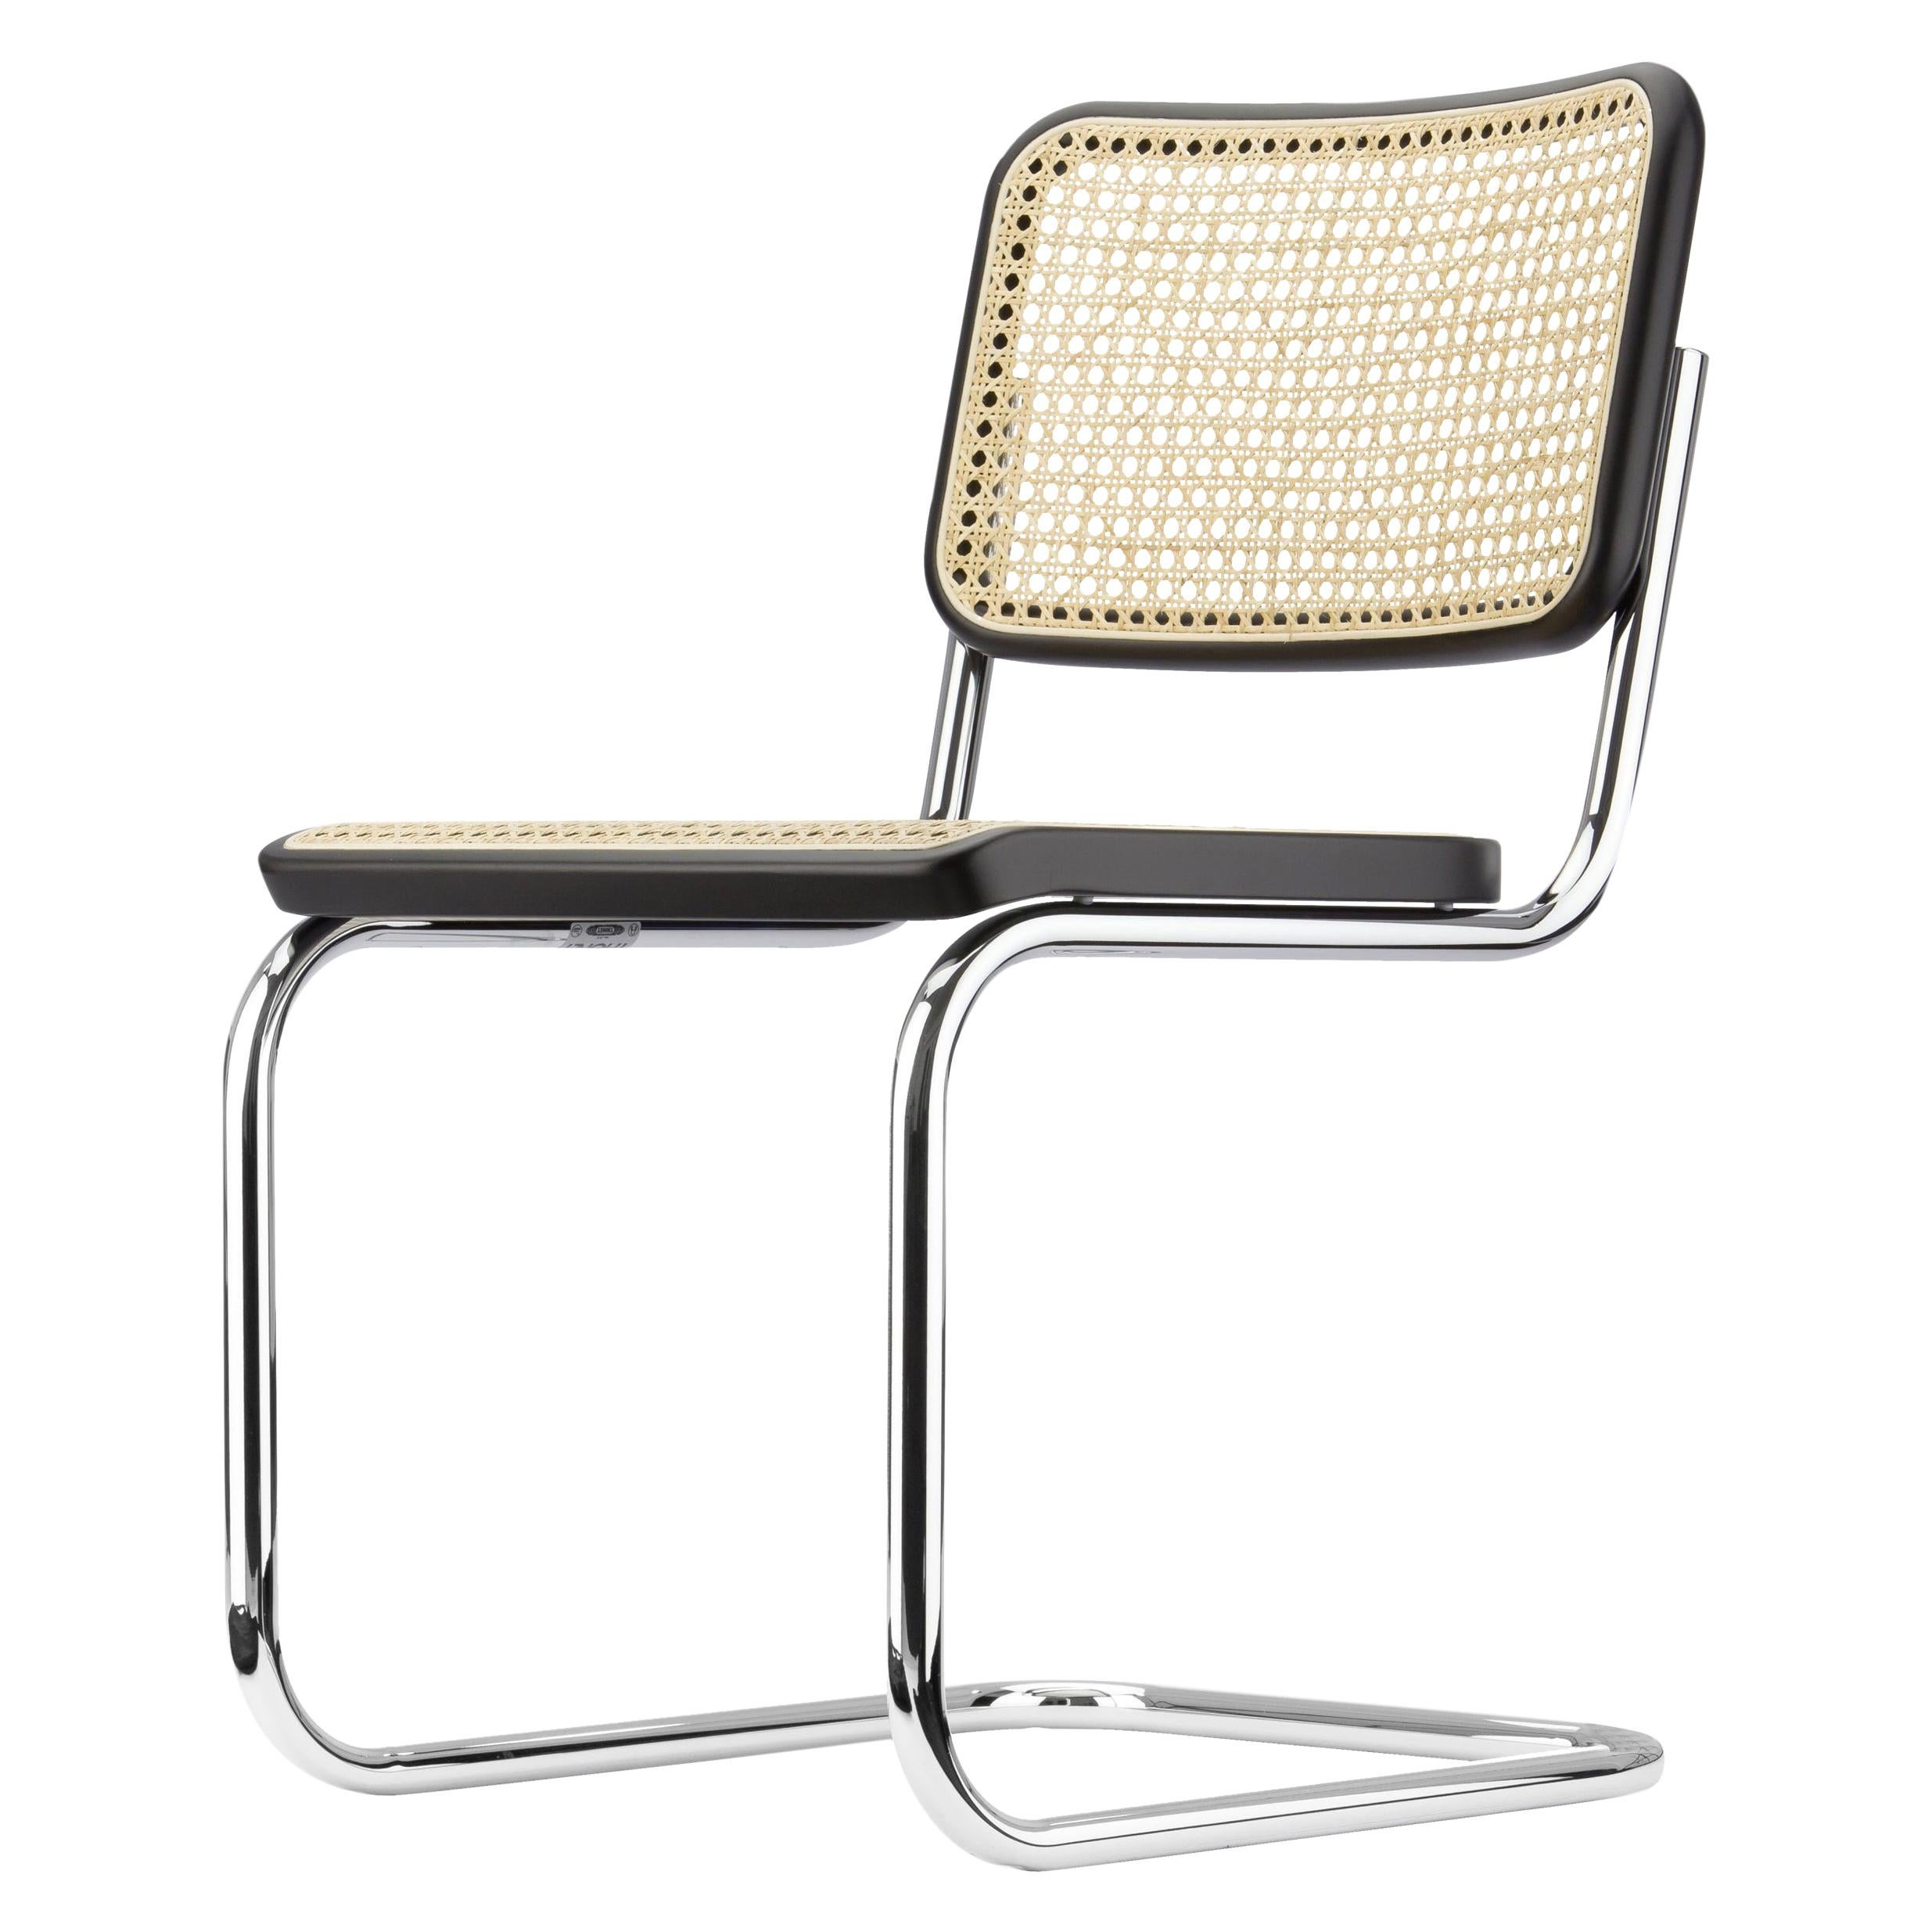 S 32 Cantilever Chair Designed by Marcel Breuer